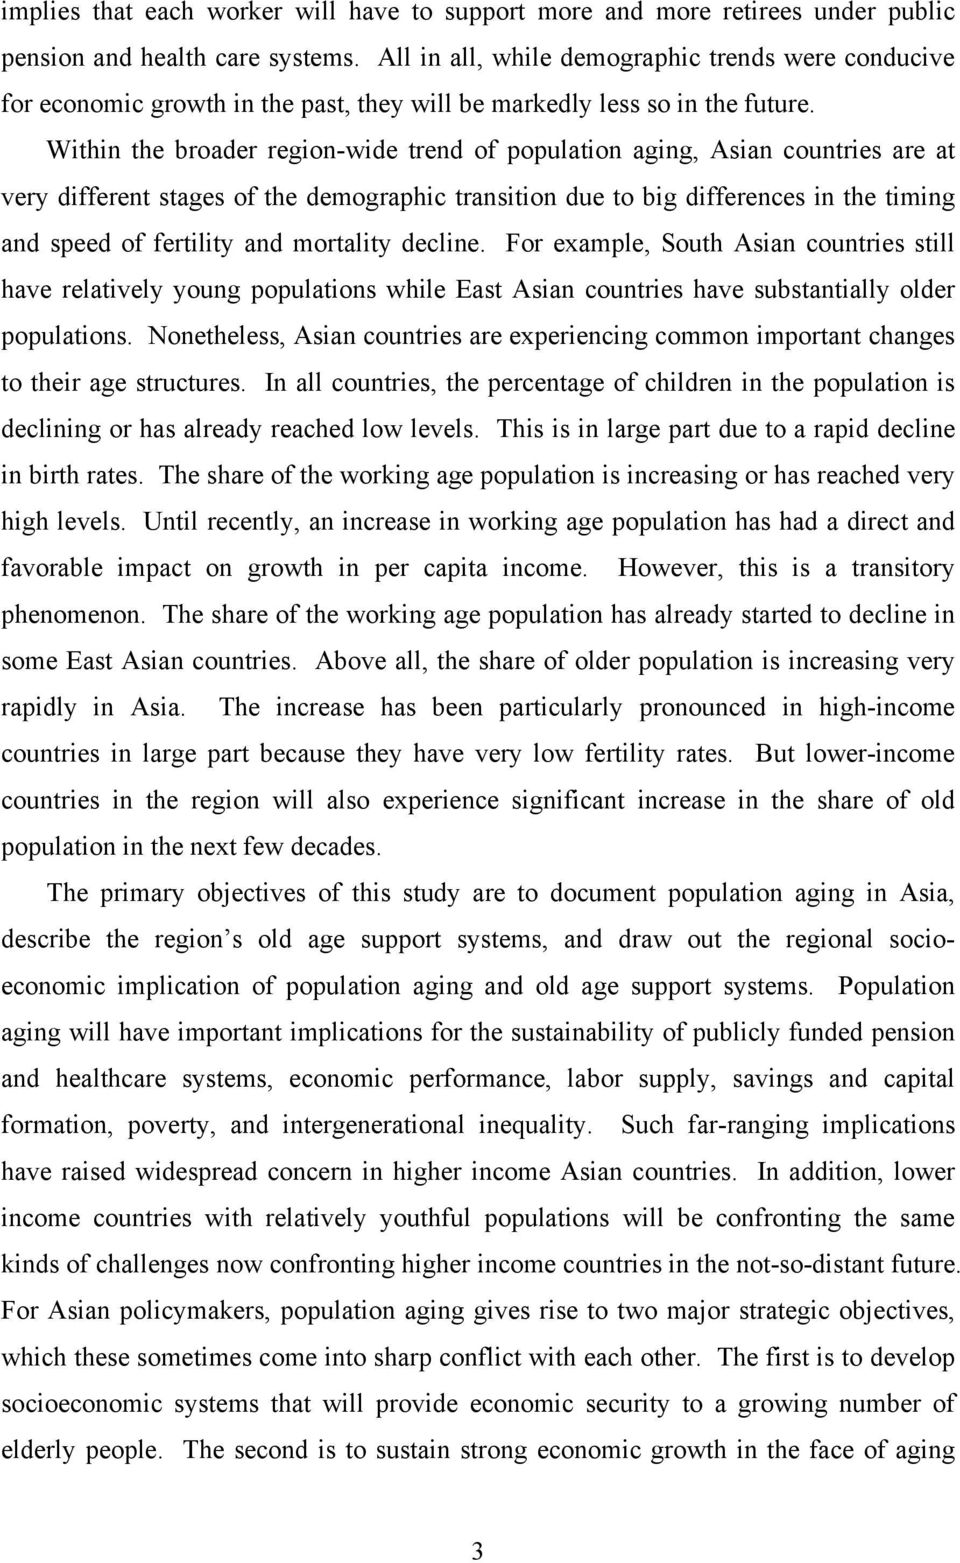 Within the broader region-wide trend of population aging, Asian countries are at very different stages of the demographic transition due to big differences in the timing and speed of fertility and